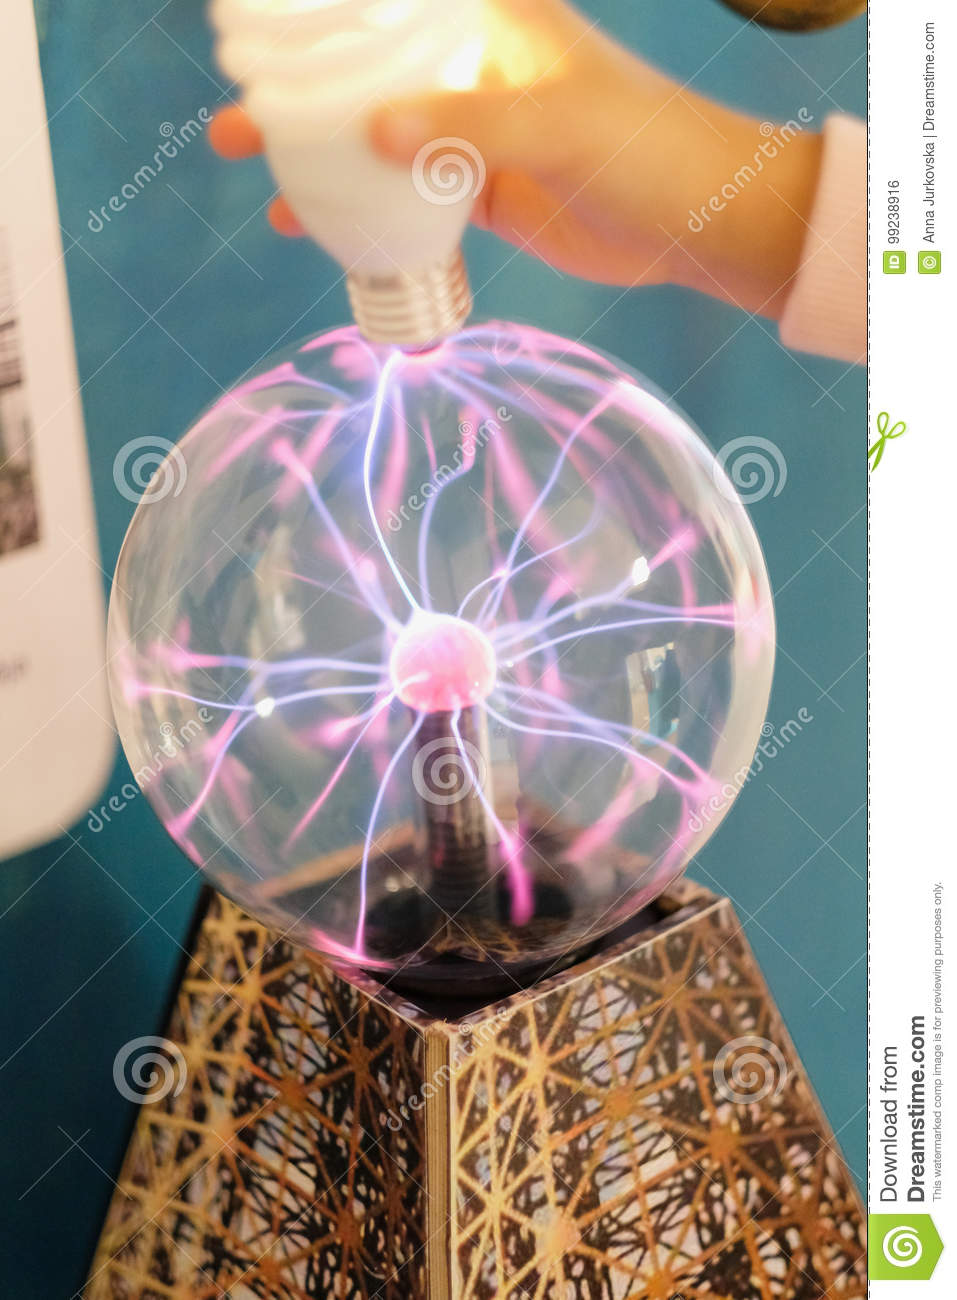 Electric Discharge In A Glass Bowl Stock Photo - Image of lightning